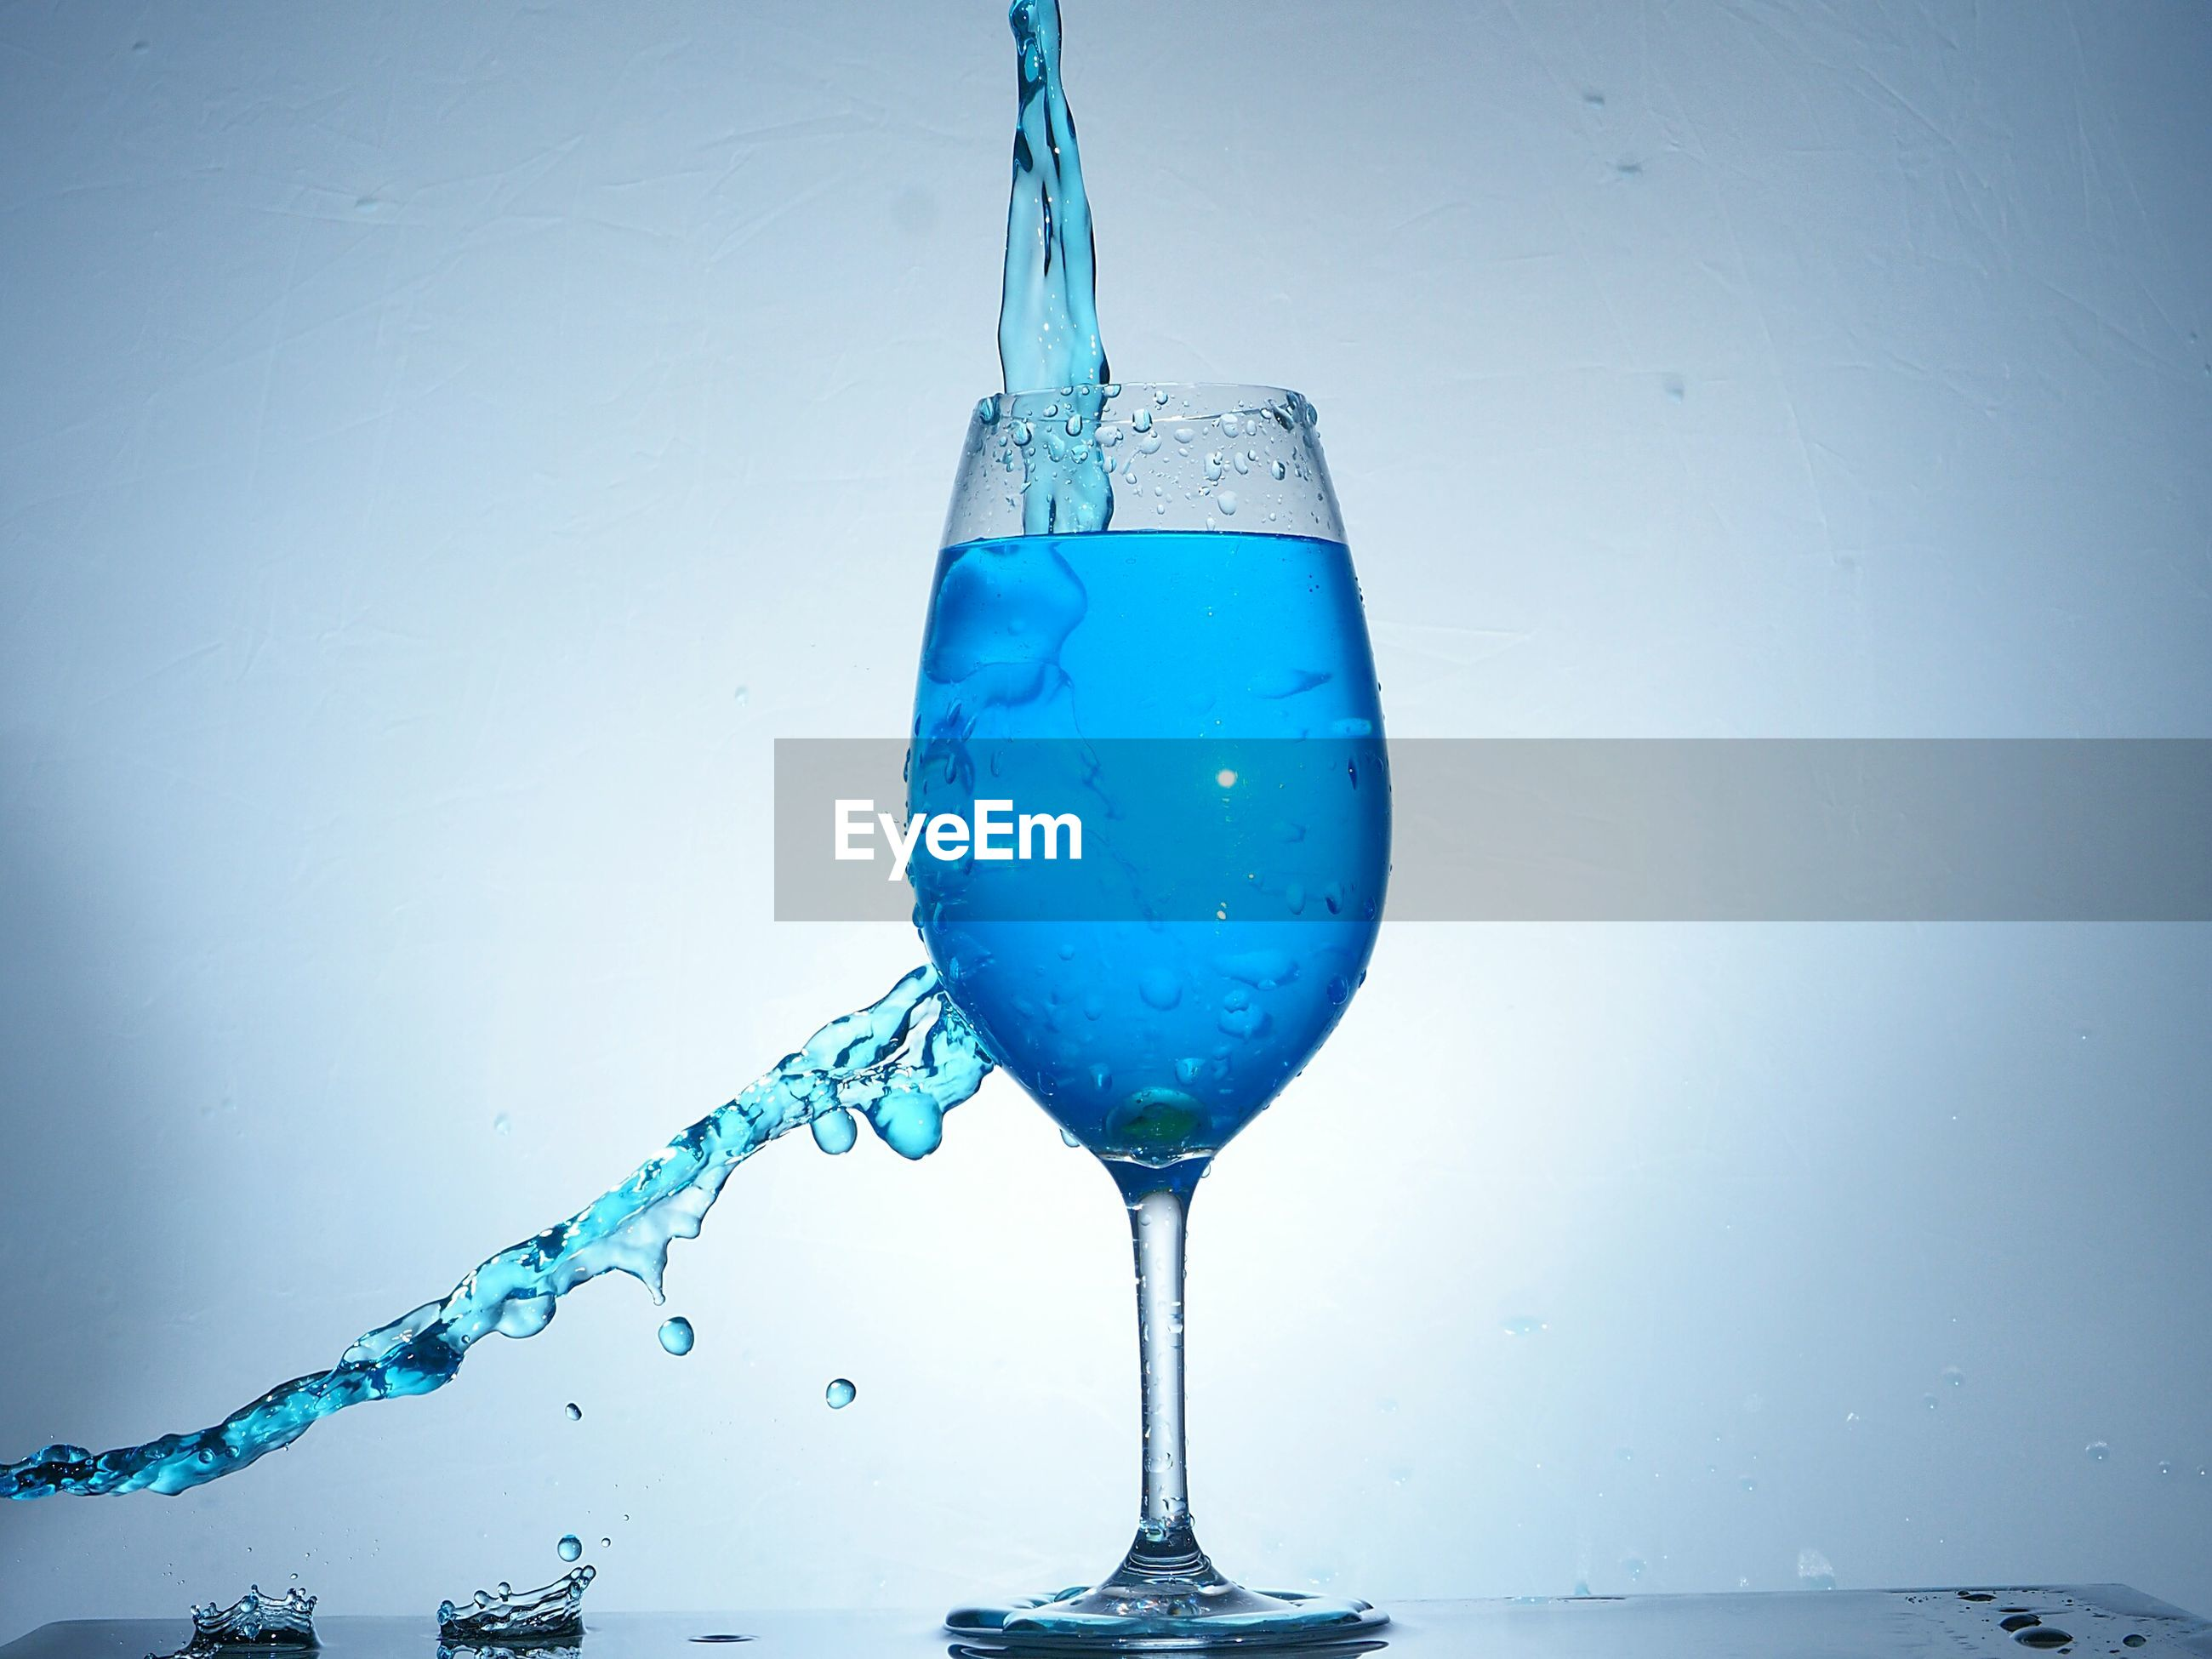 CLOSE-UP OF WATER DROP ON BLUE GLASS AGAINST WHITE BACKGROUND